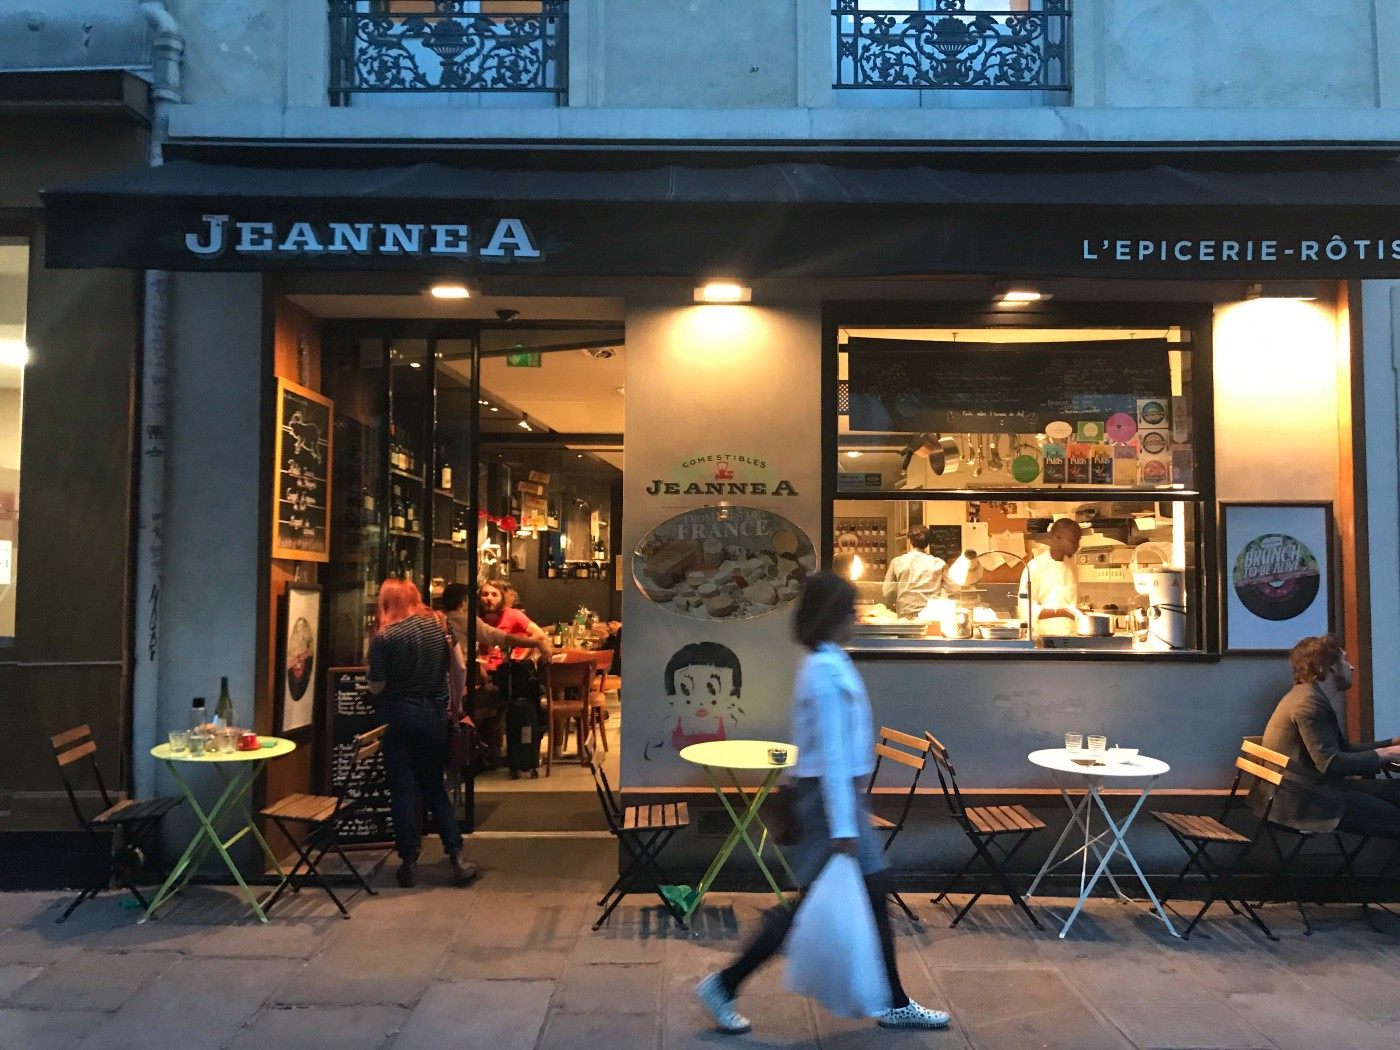 A woman carrying a white plastic bag walks by Paris restaurant JeanneA at night. The restaurant has sidewalk tables.